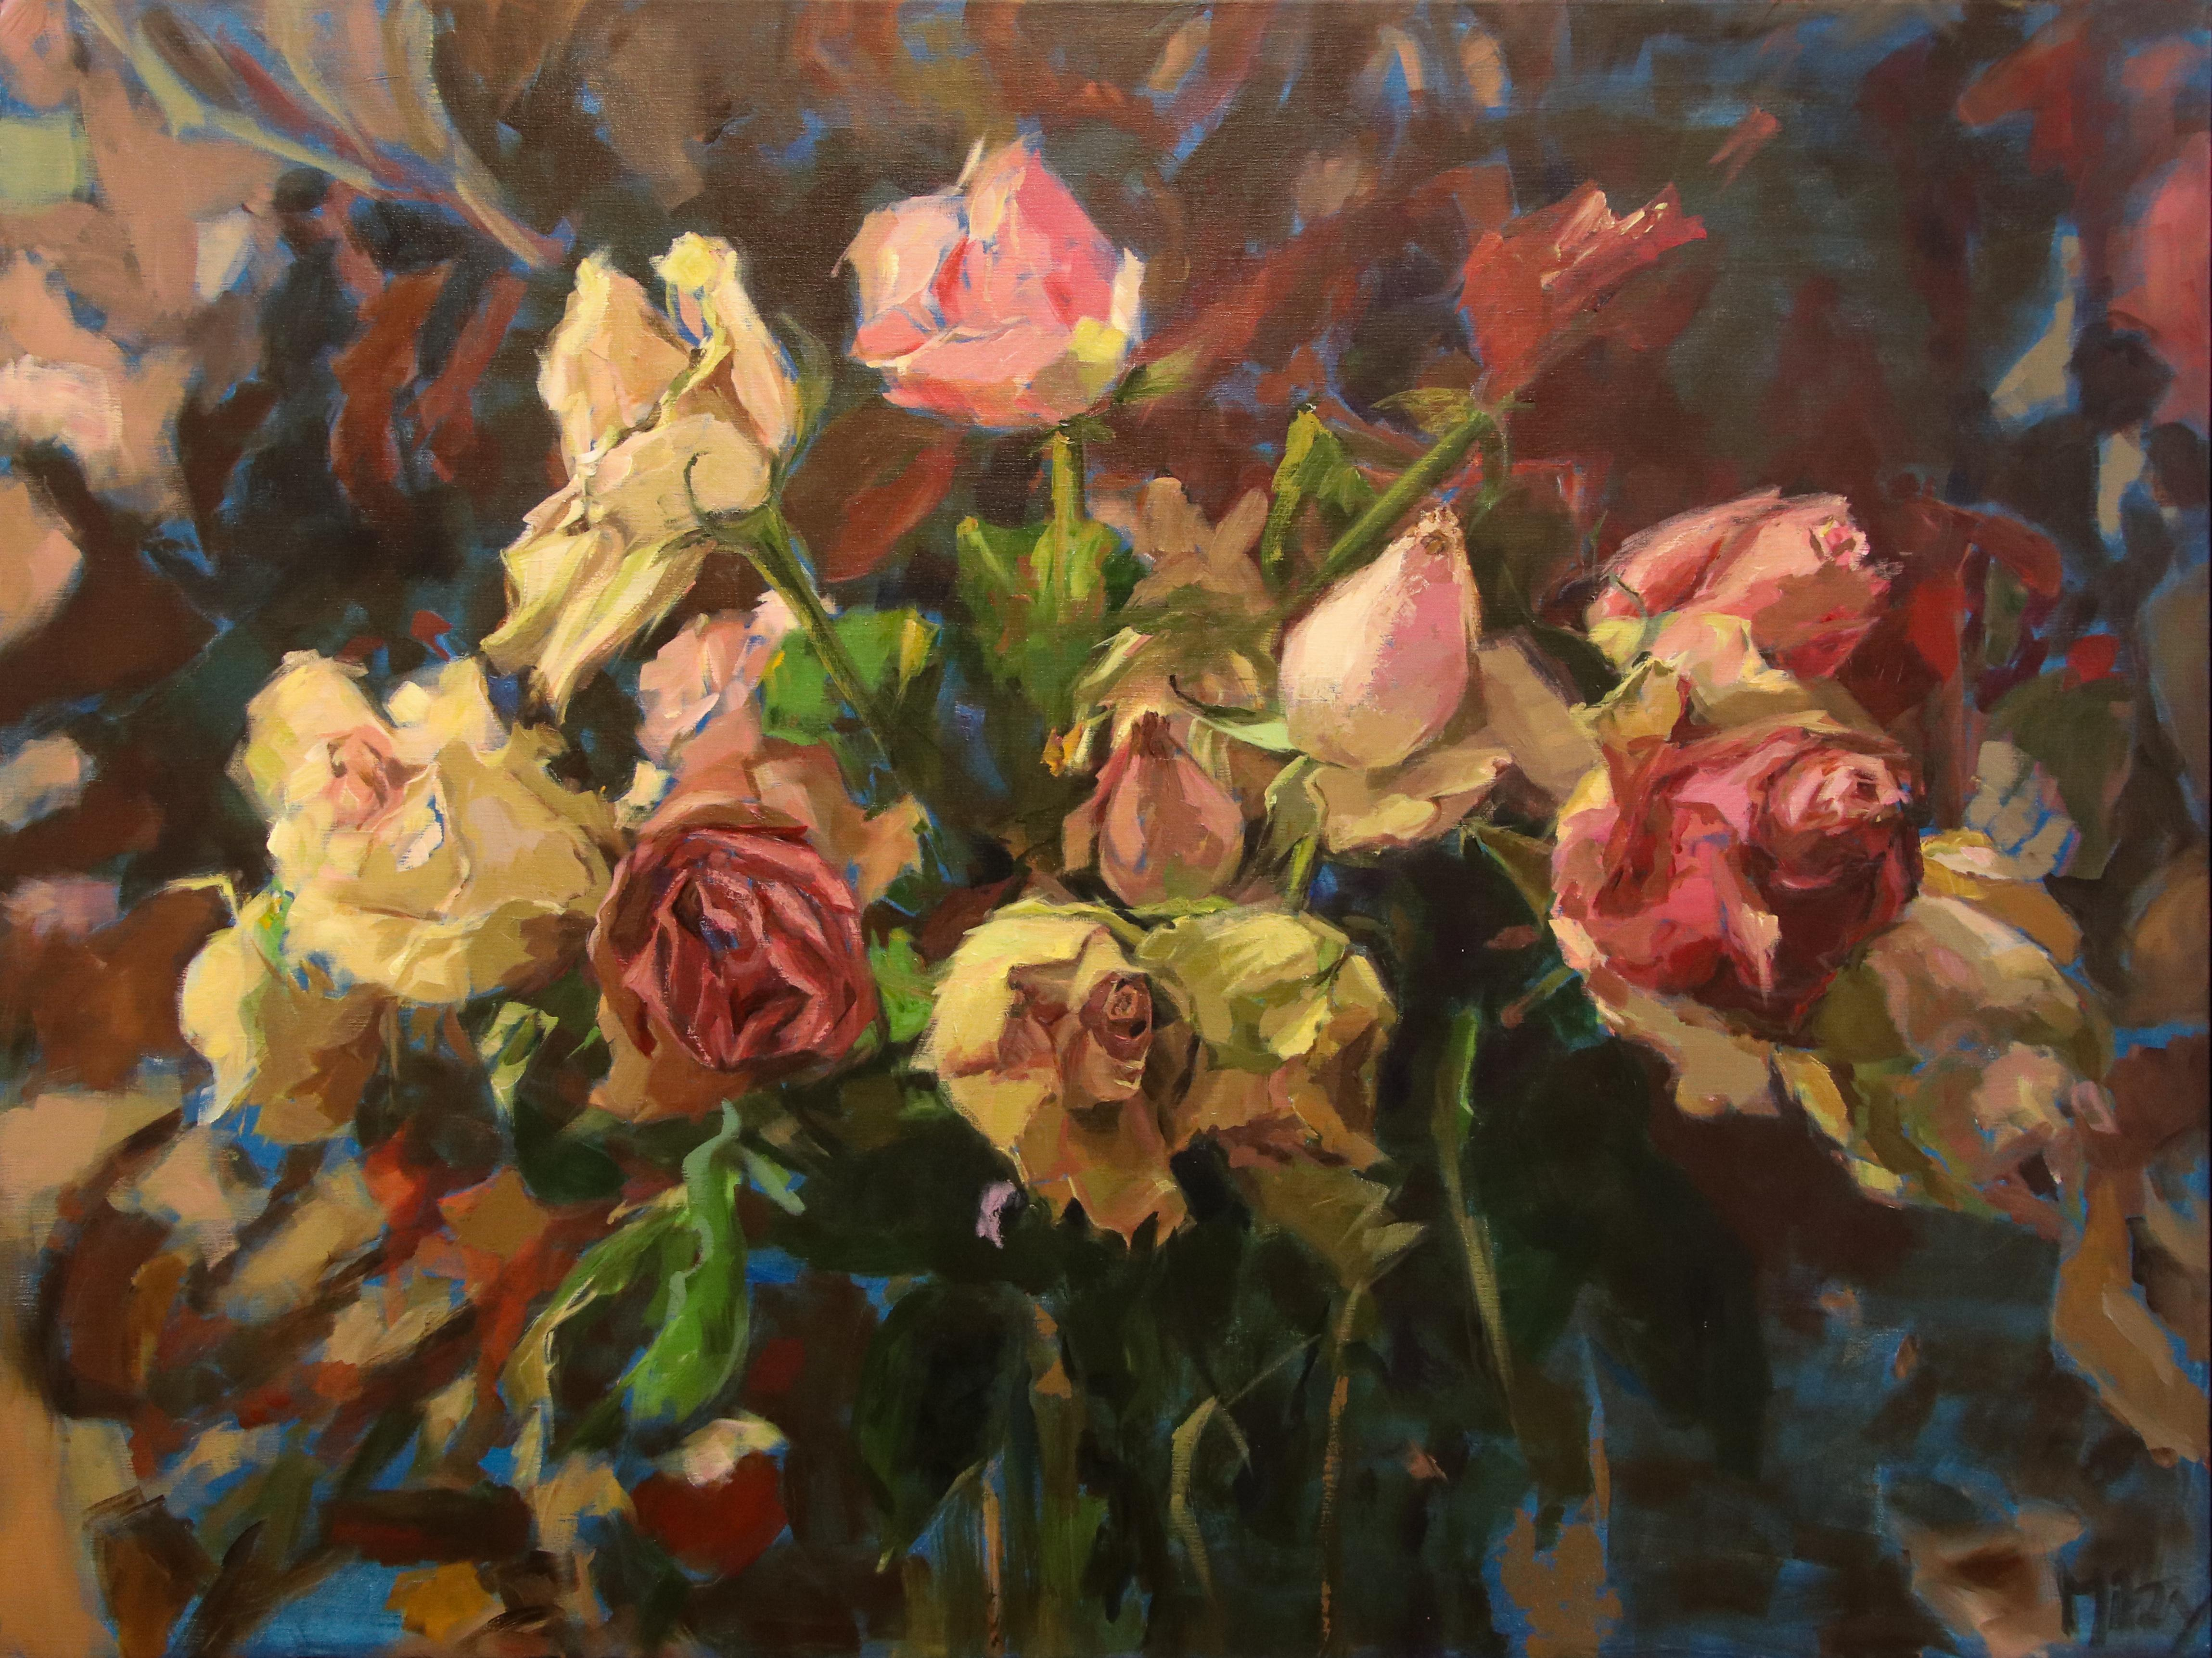 Roses- 21st Century Contemporary Acrylic Painting by Dutch Mitzy Renooy